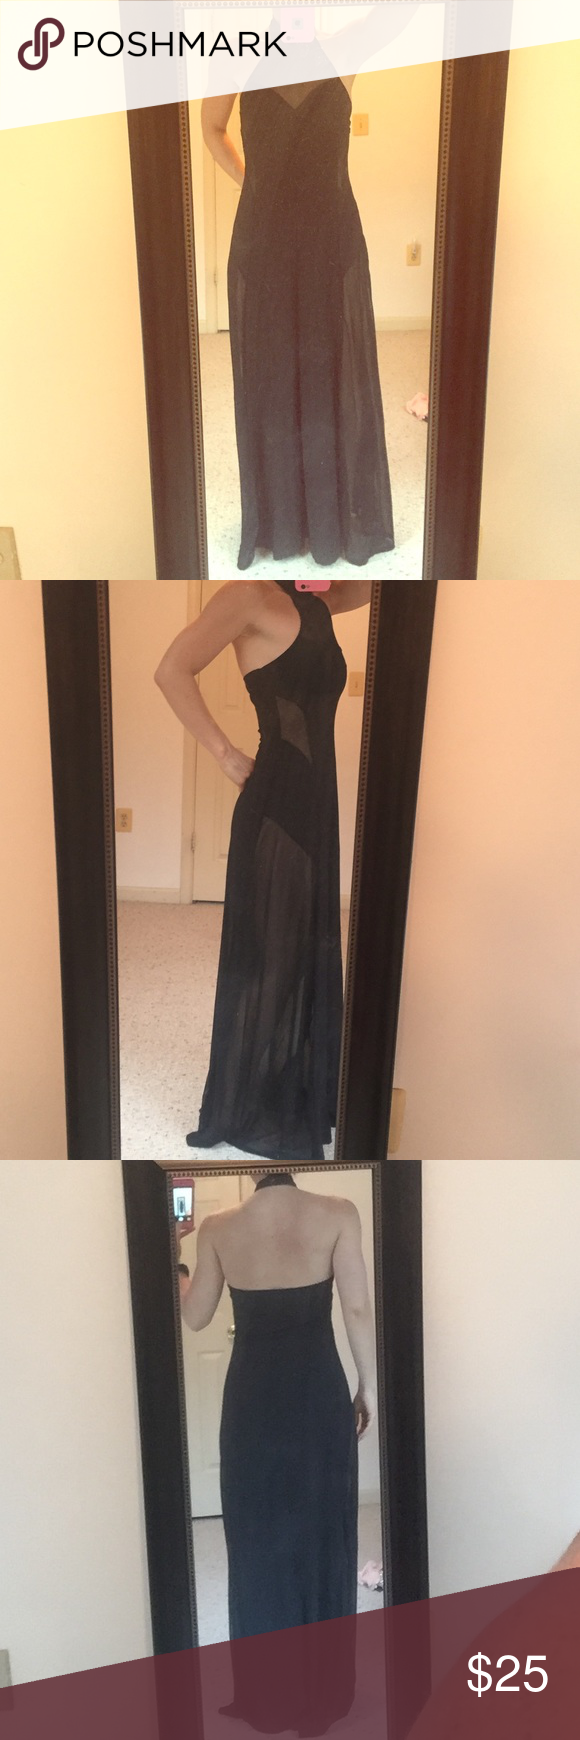 Forever 21 black dress Forever 21 black dress with sheer cut outs. Worn once. My measurements are 34C, 29 inch waist, 40 inch hips. Could also fit a 36C/34D. Excellent condition, smoke free home. Forever 21 Dresses